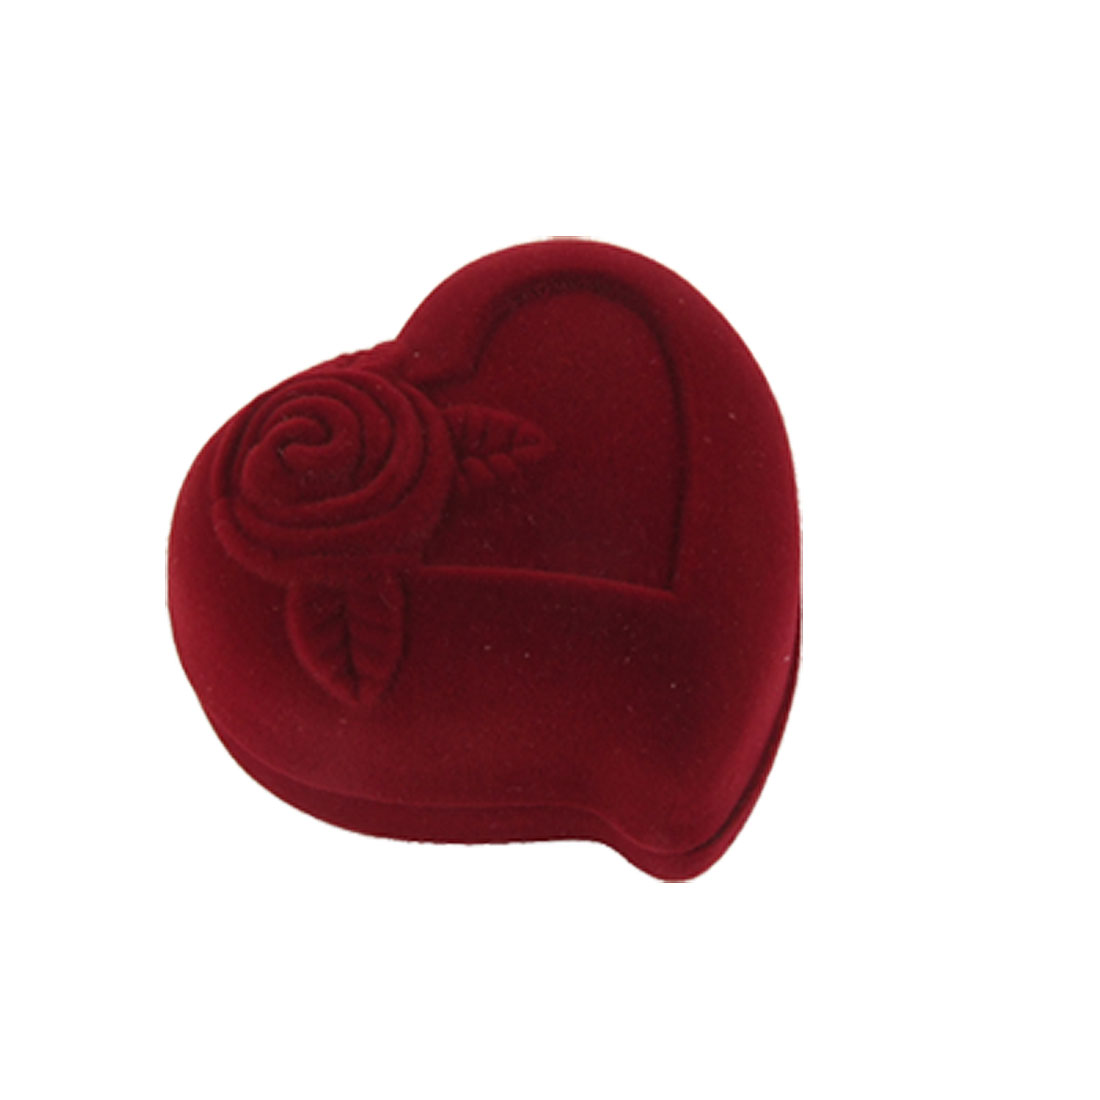 Flannel Exterior Heart Shaped Wedding Ring Case Holder Dark Red